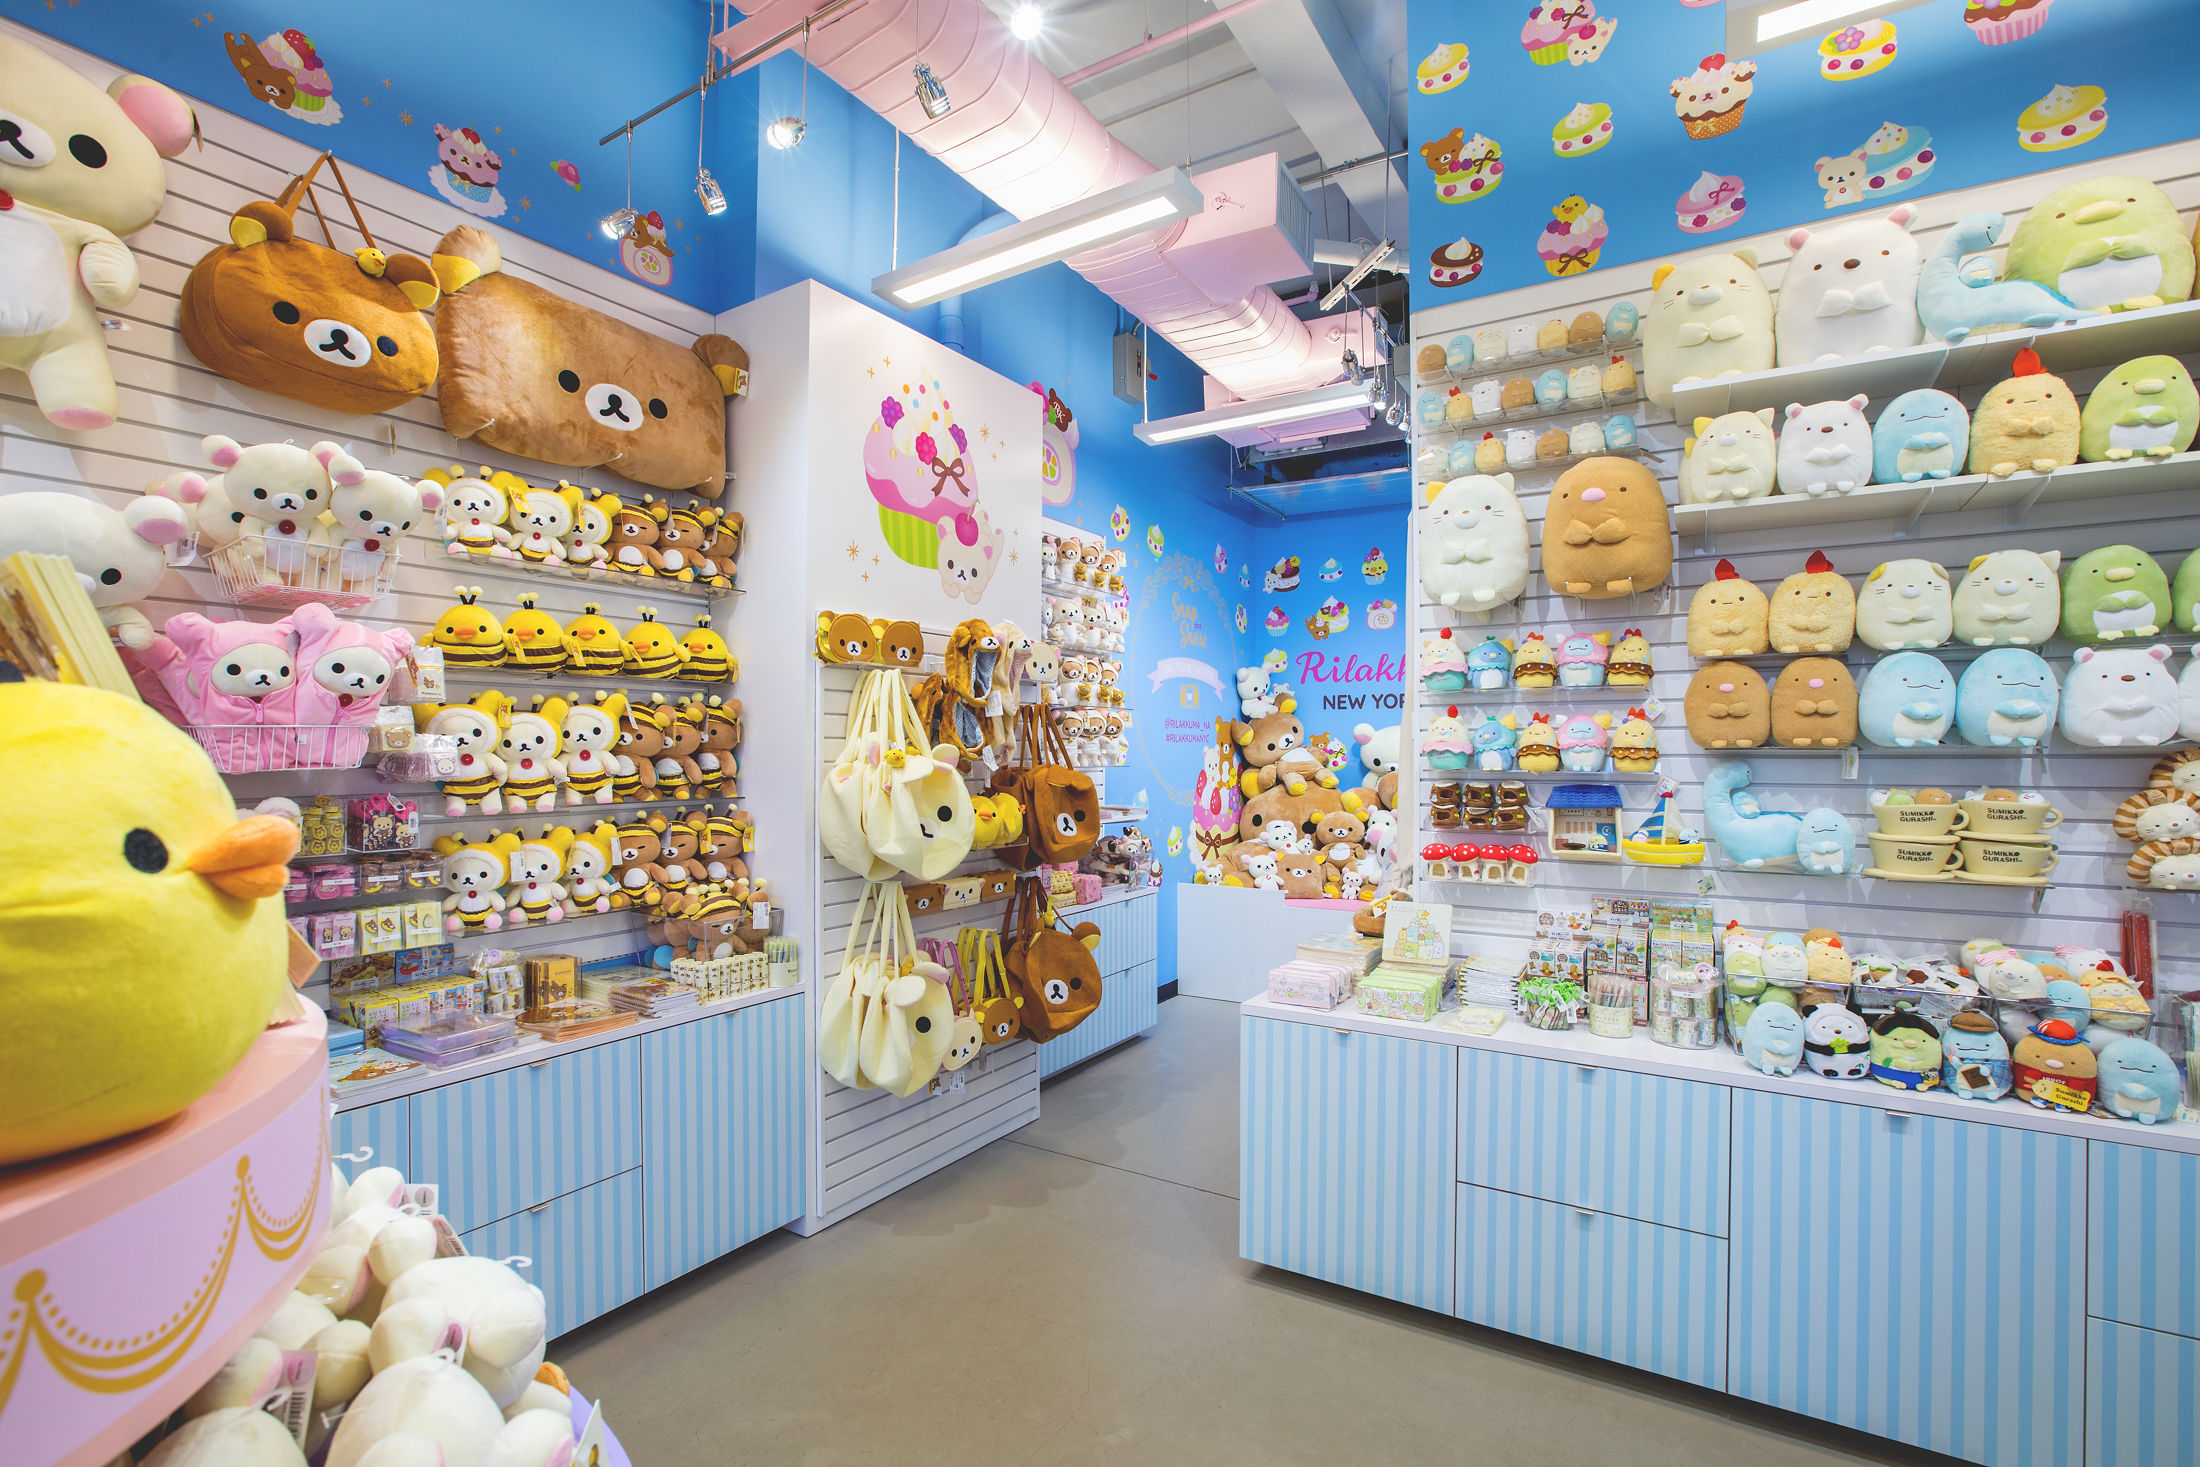 Inside of the Rilakkuma Pop-up shop in New York, showcasing a variety of Rilakkuma and Sumikkogurashi plush as well as the Rilakkuma plush pit. The walls are sky blue with a Rilakkuma sweets pattern of many different Rilakkuma cupcakes and desserts.